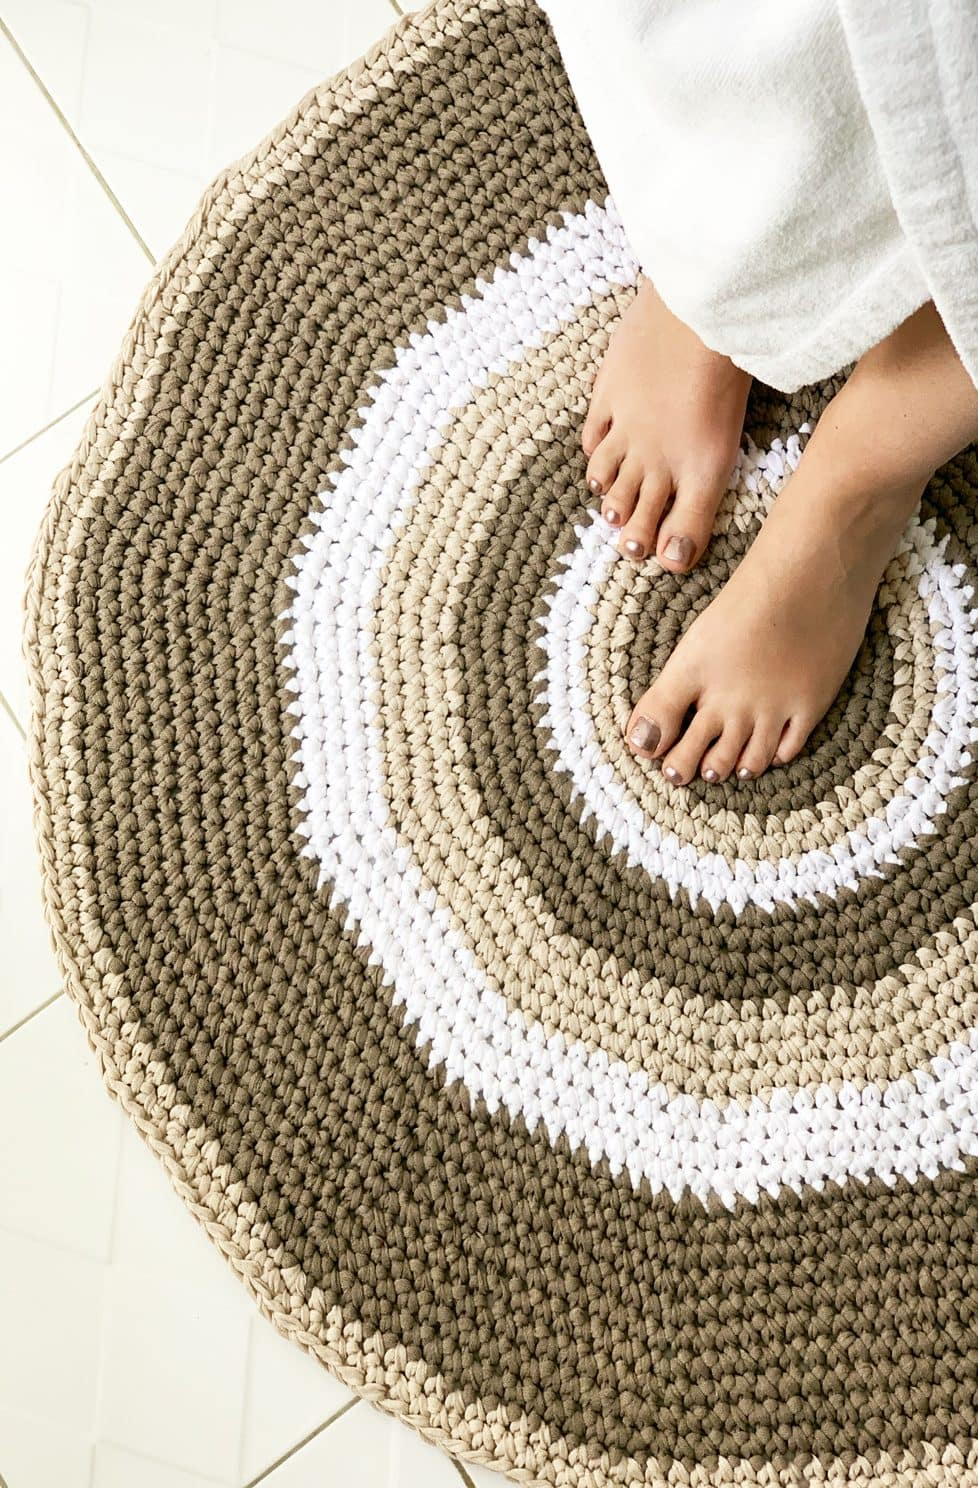 How To Crochet A Circular Rug